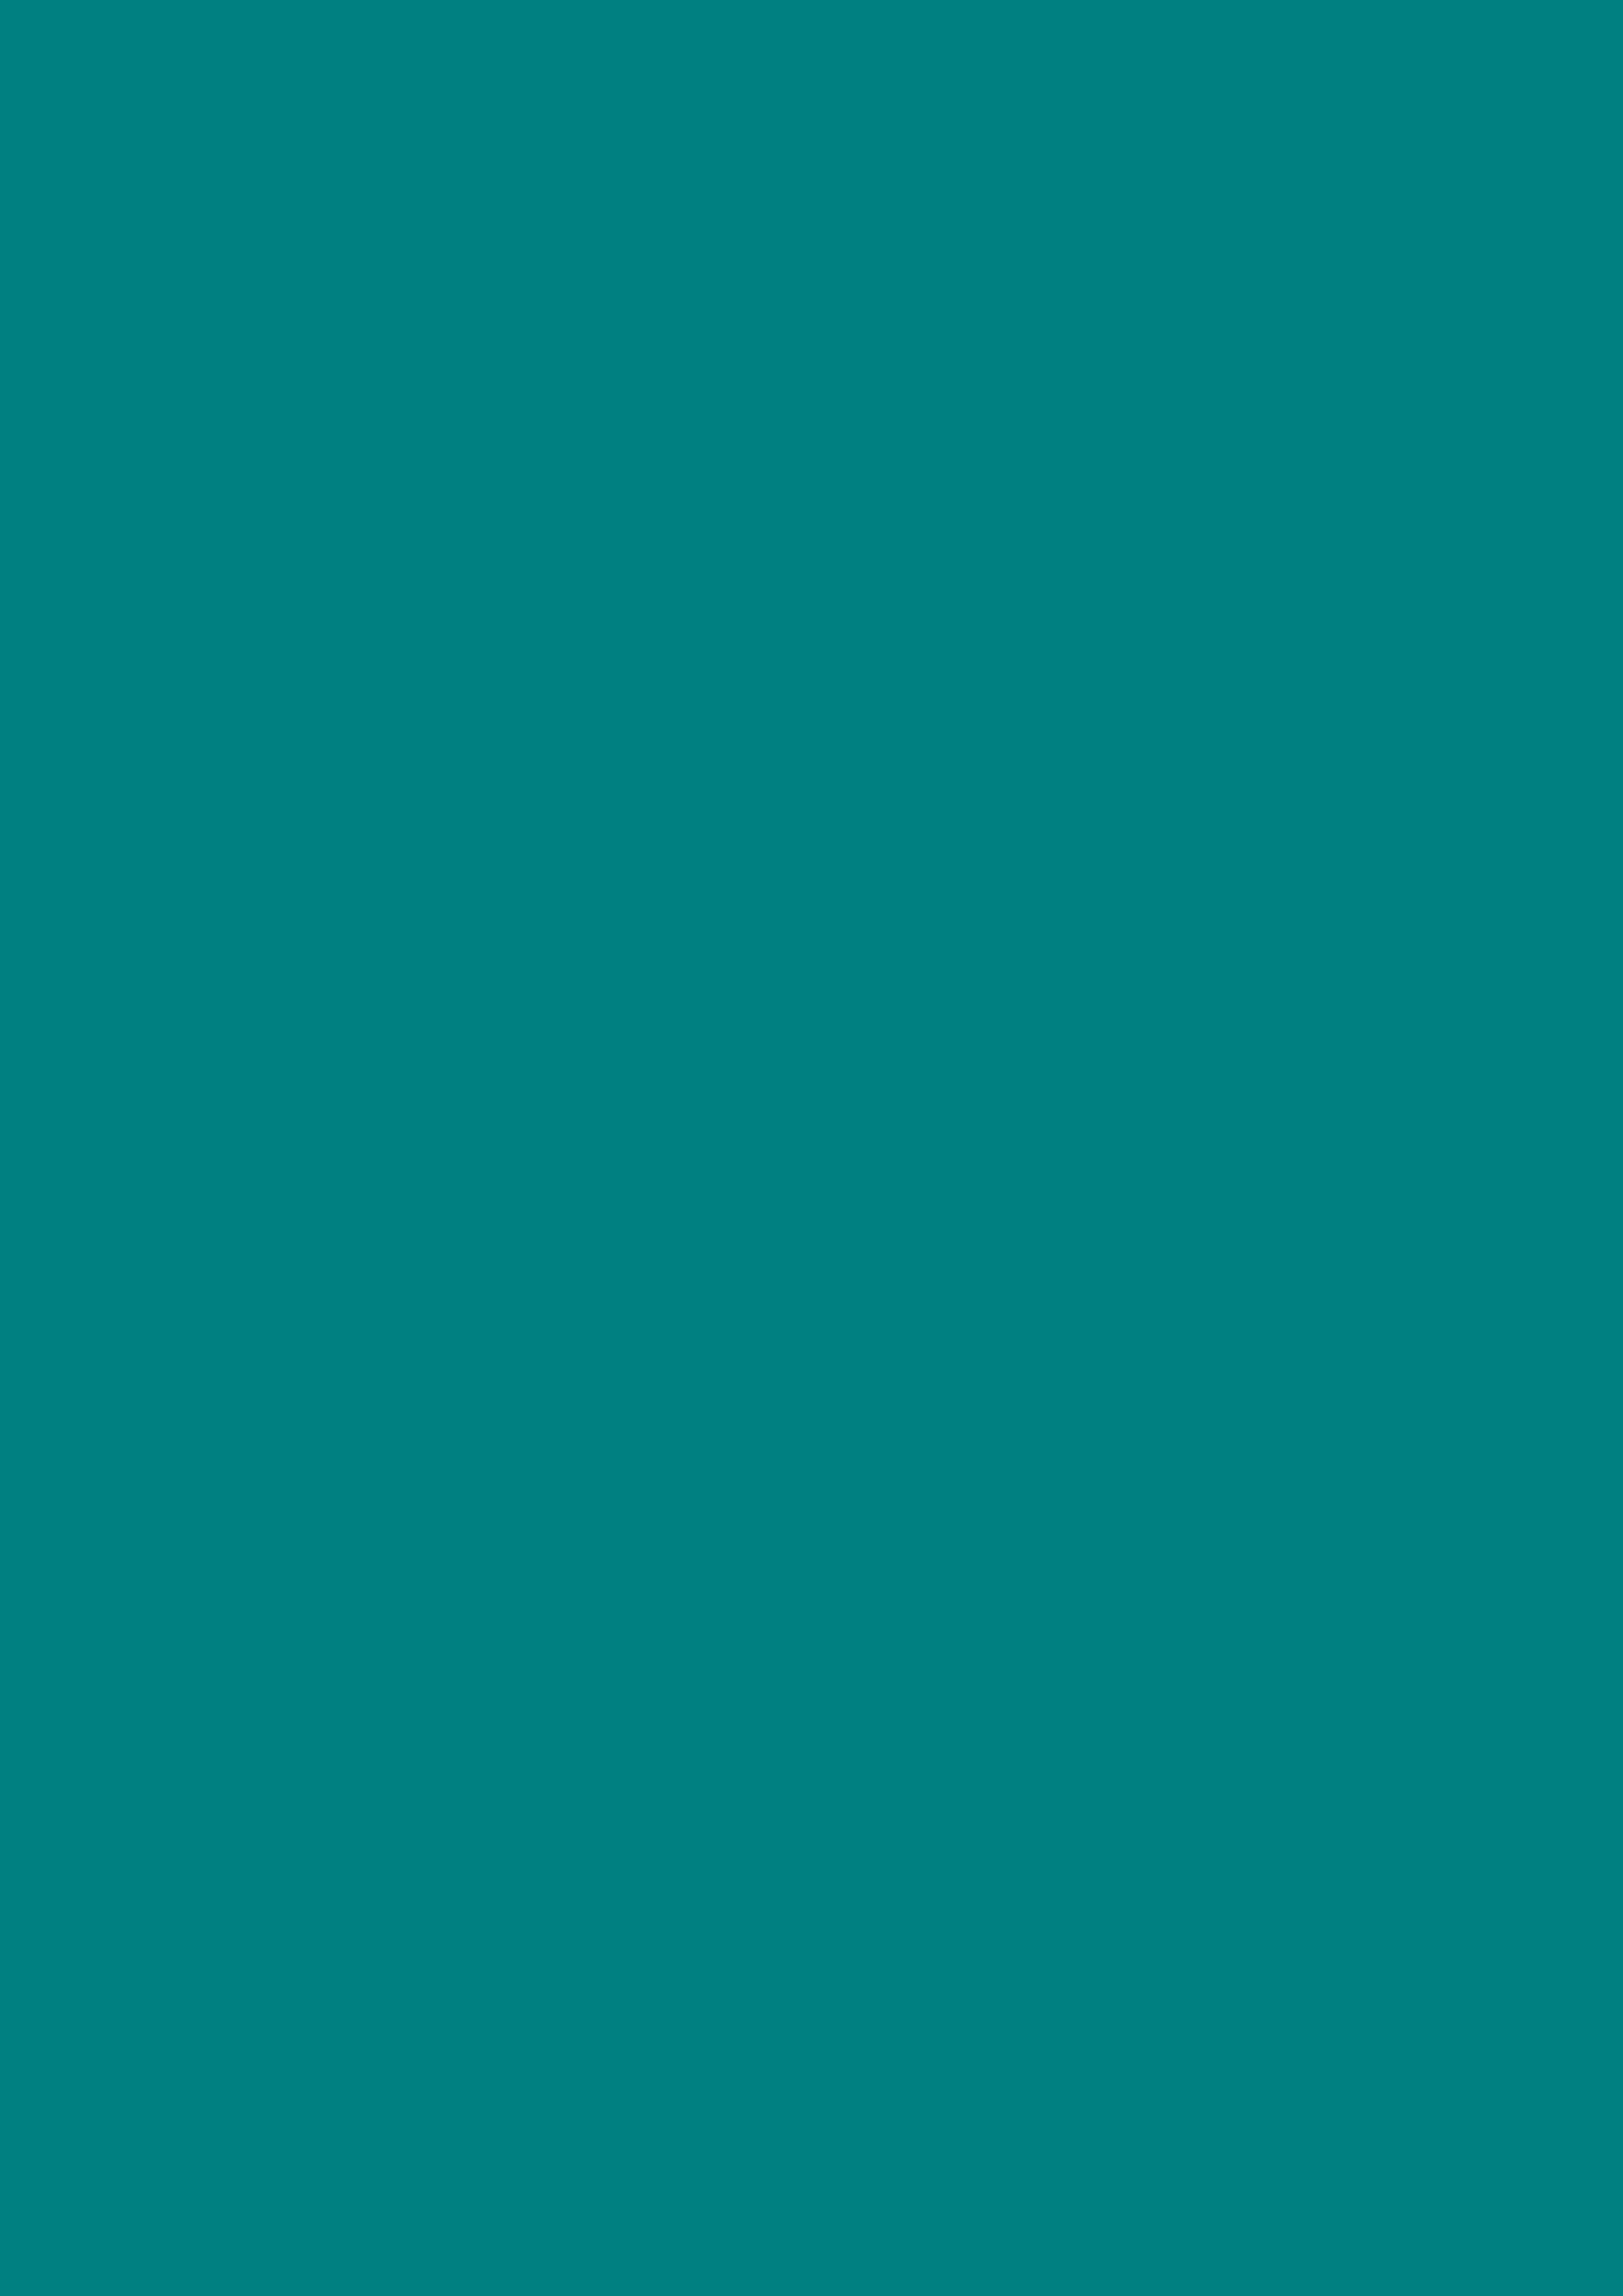 2480x3508 Teal Solid Color Background